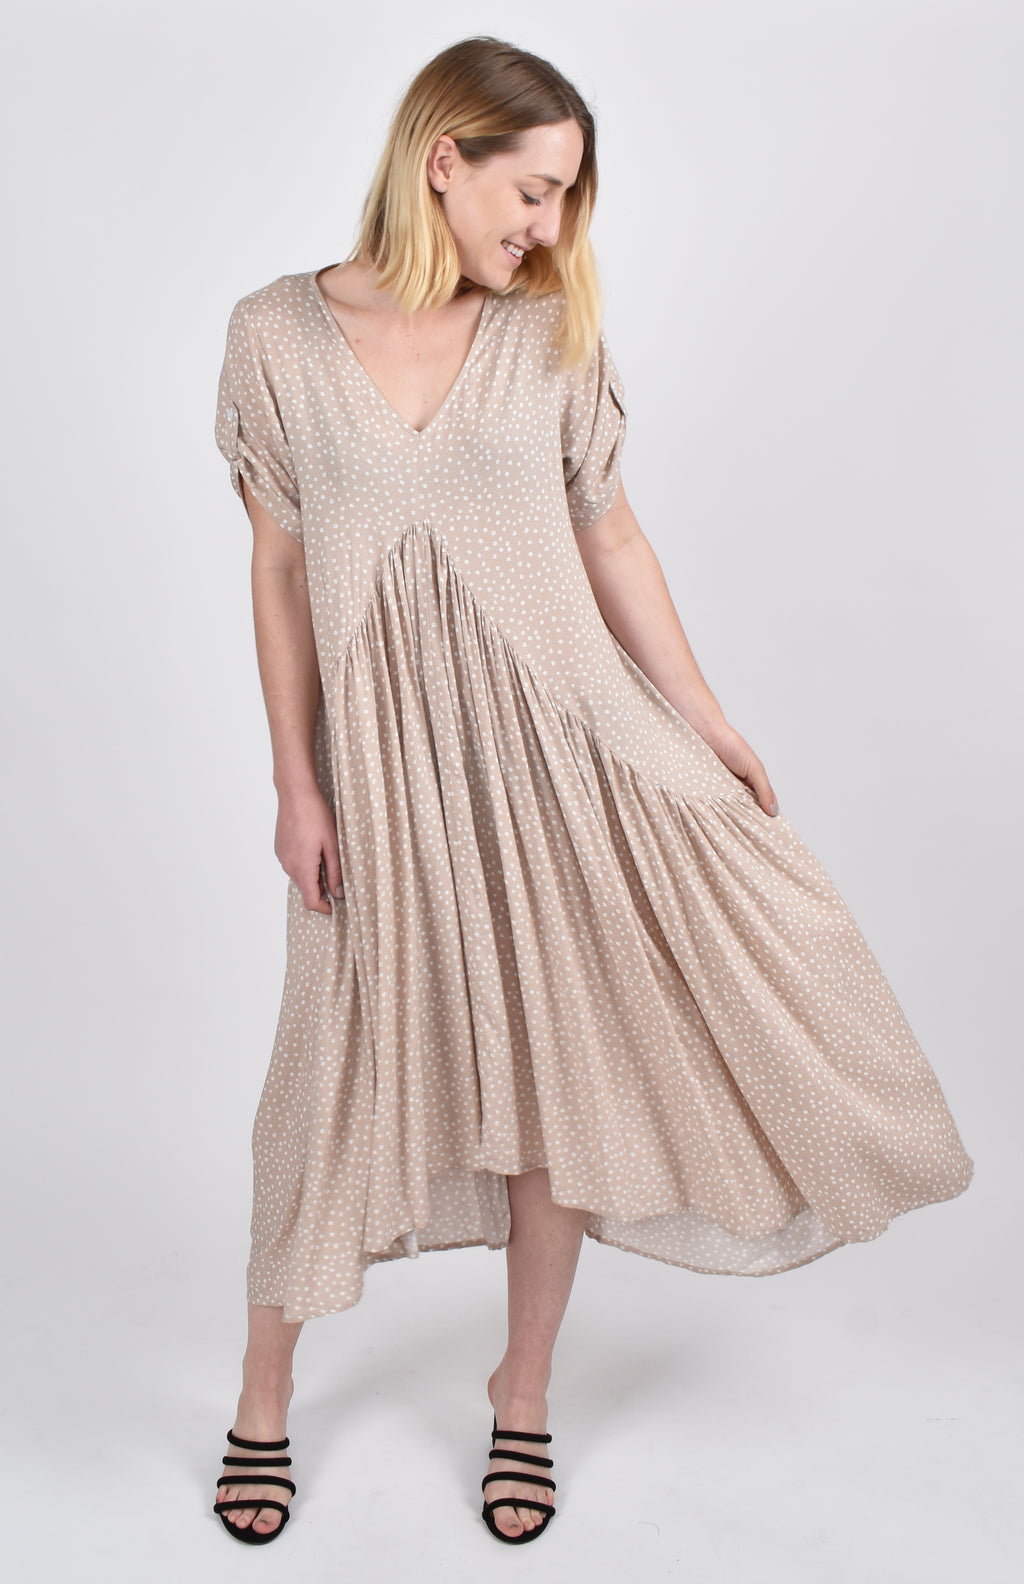 Short Sleeve Peak Maxi Dress in Sand Dune